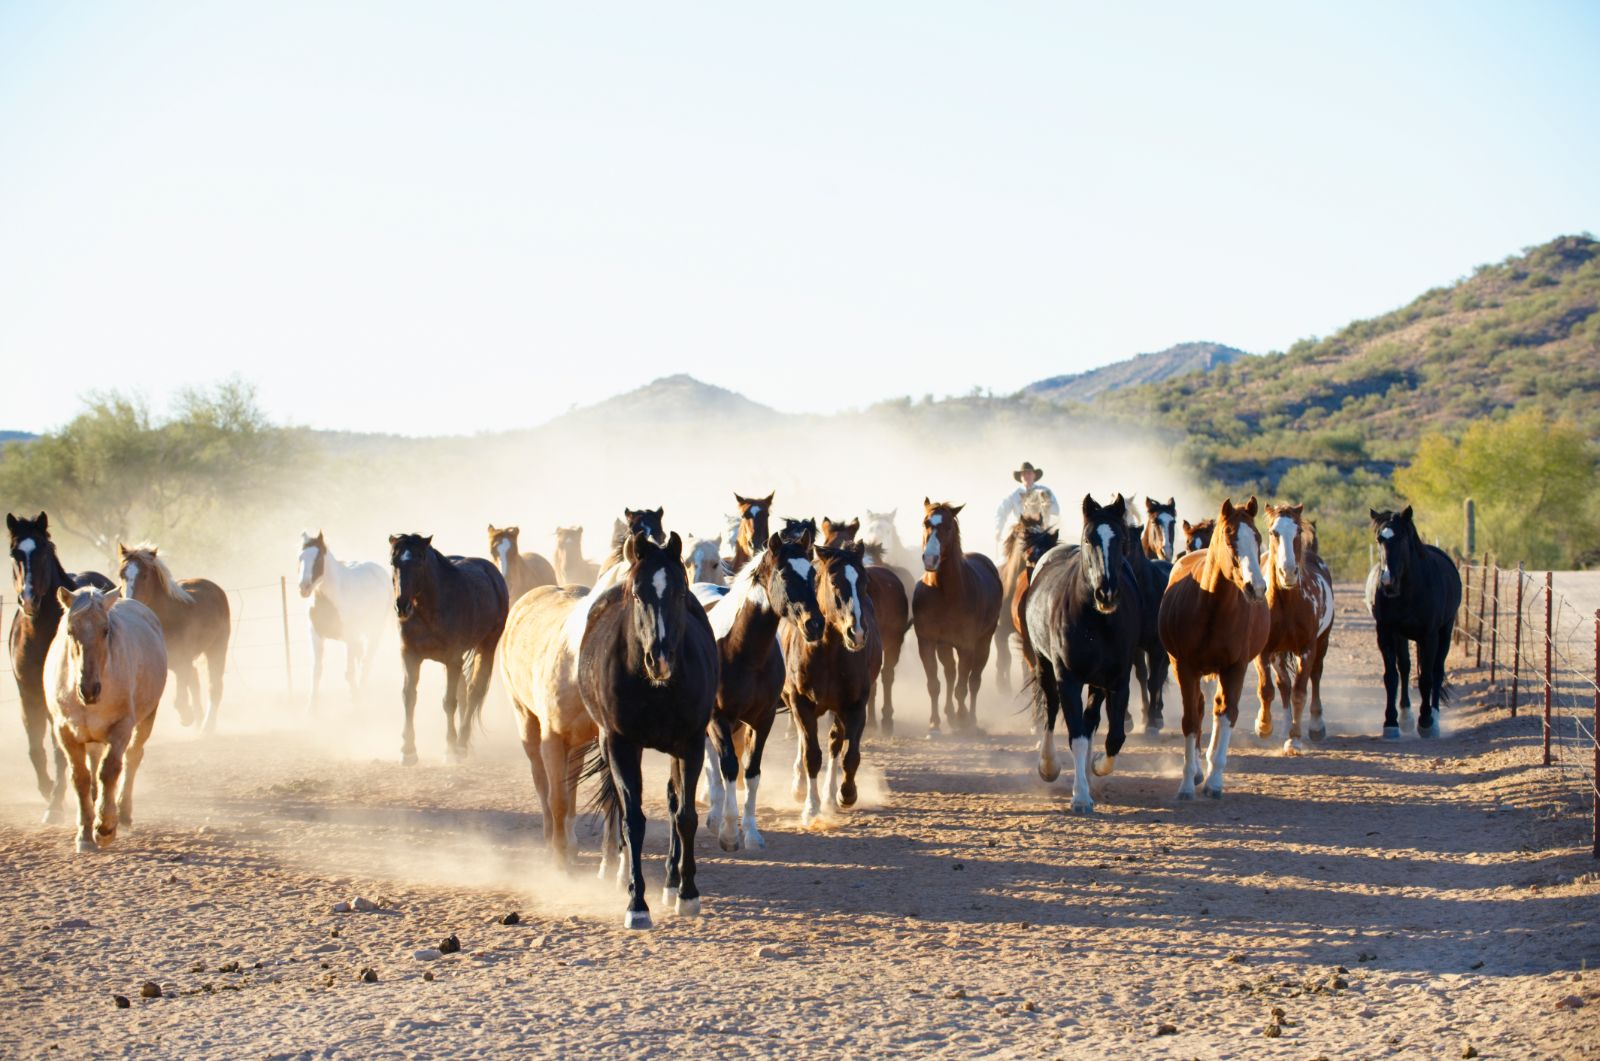 Horses running at Rancho de los Caballeros in Wickenburg, AZ